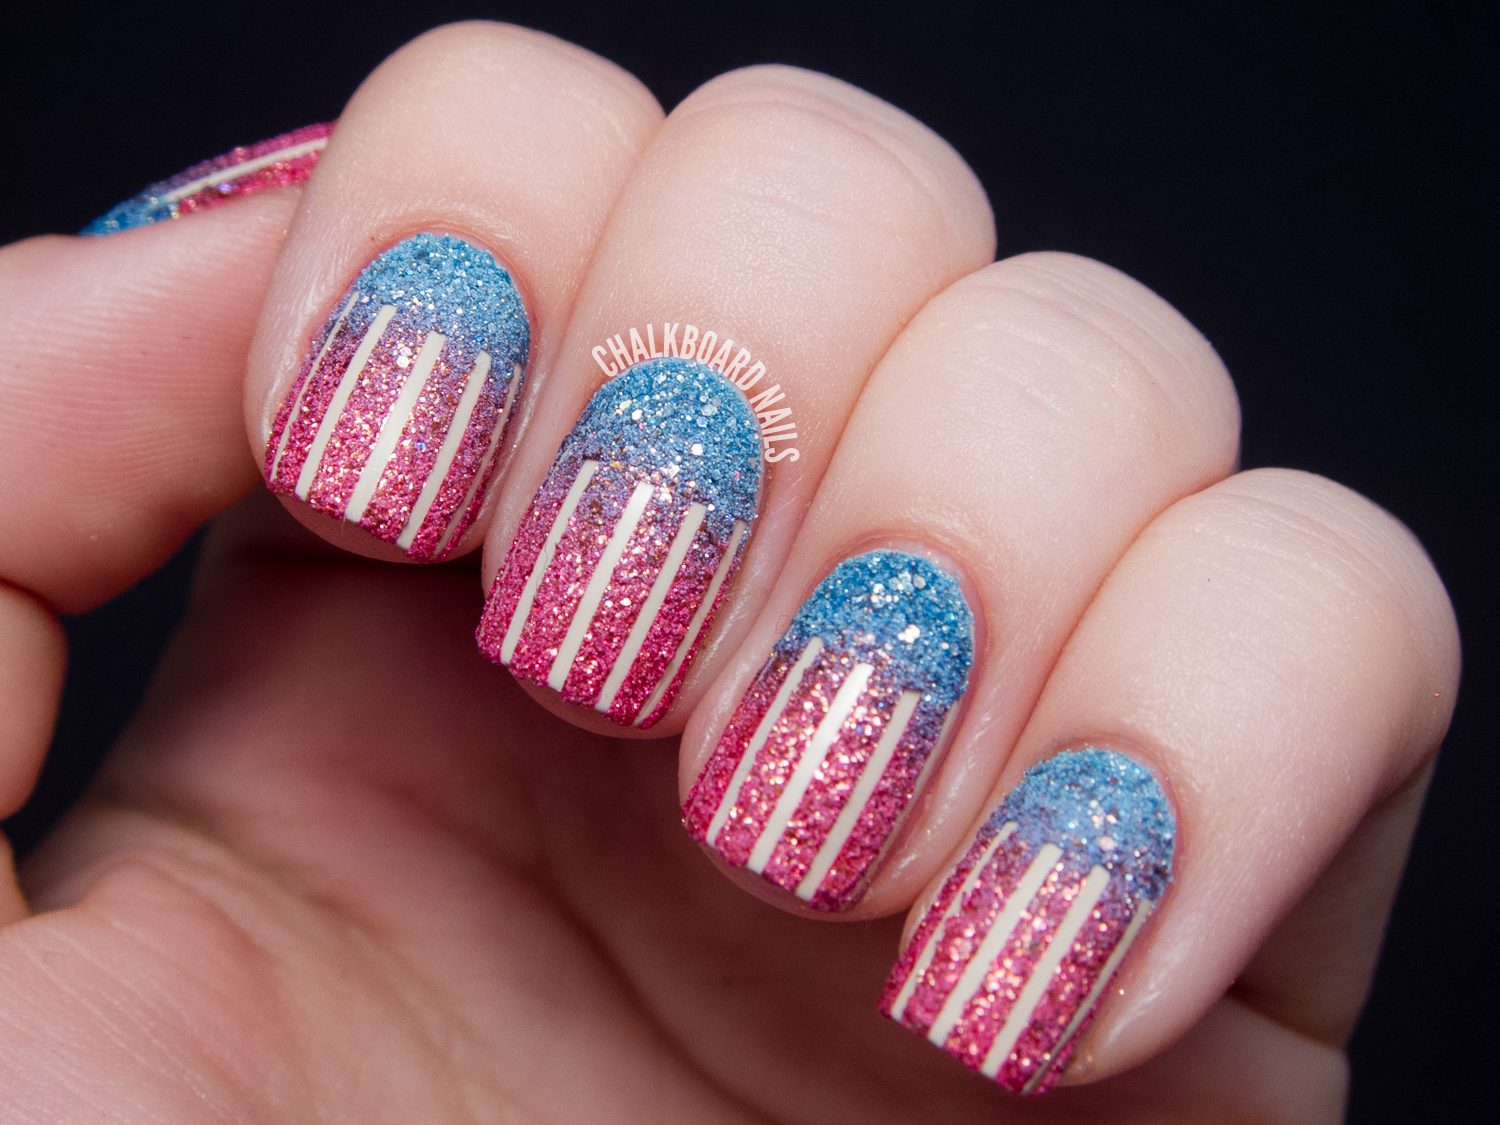 31DC2013 Day 28: Textured American Flag   Chalkboard Nails   Nail ...